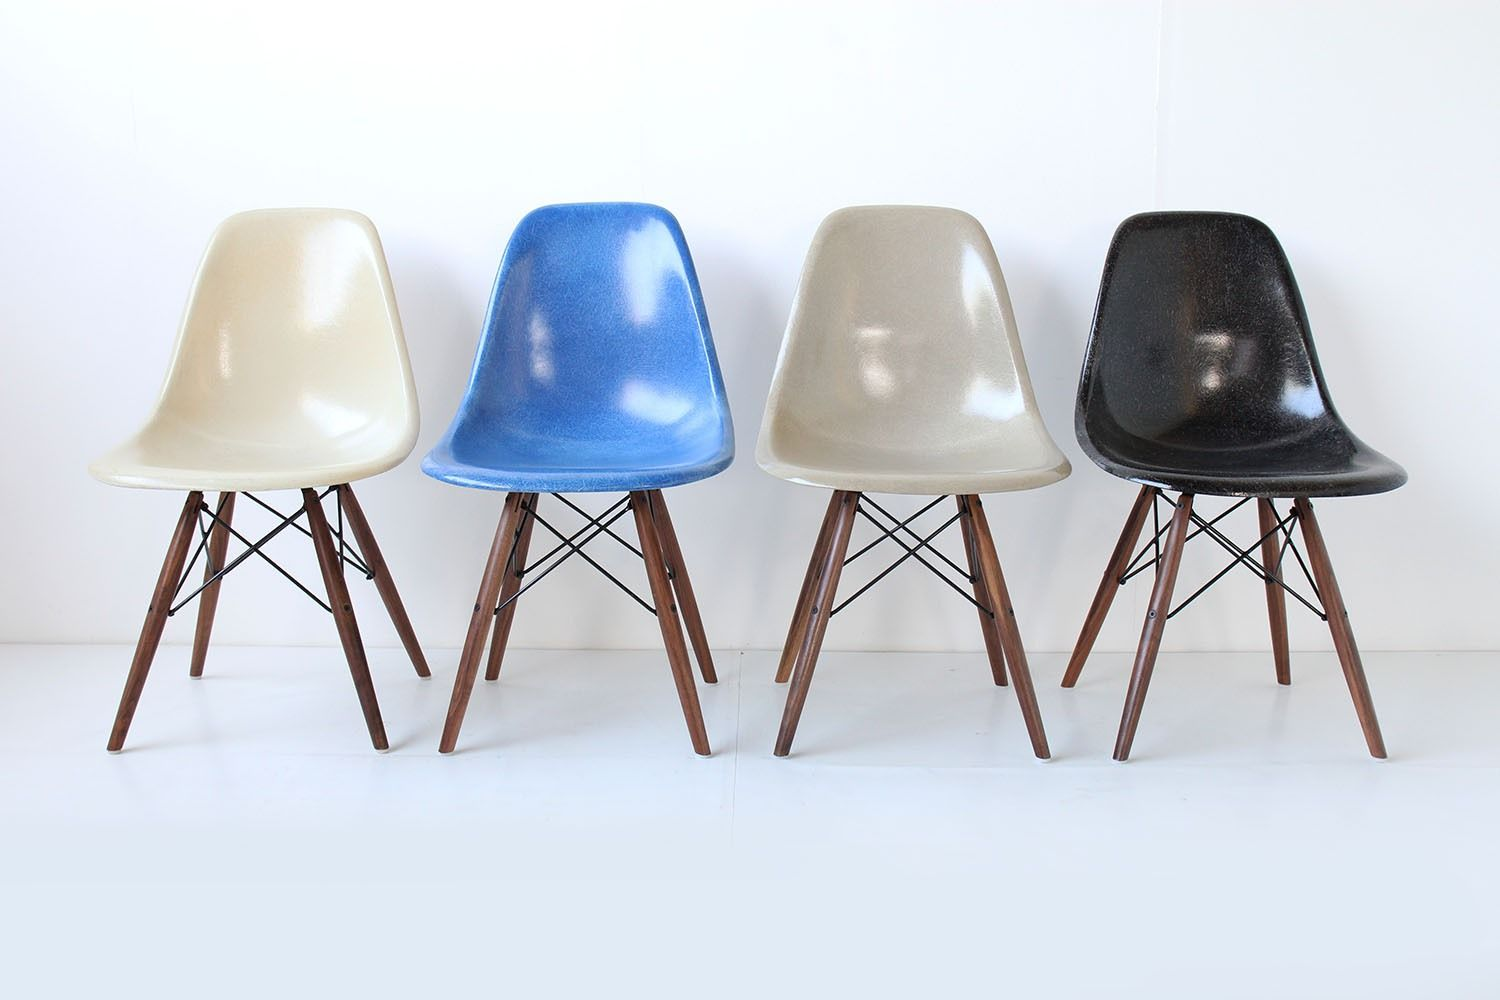 Charles and Ray Eames chairs